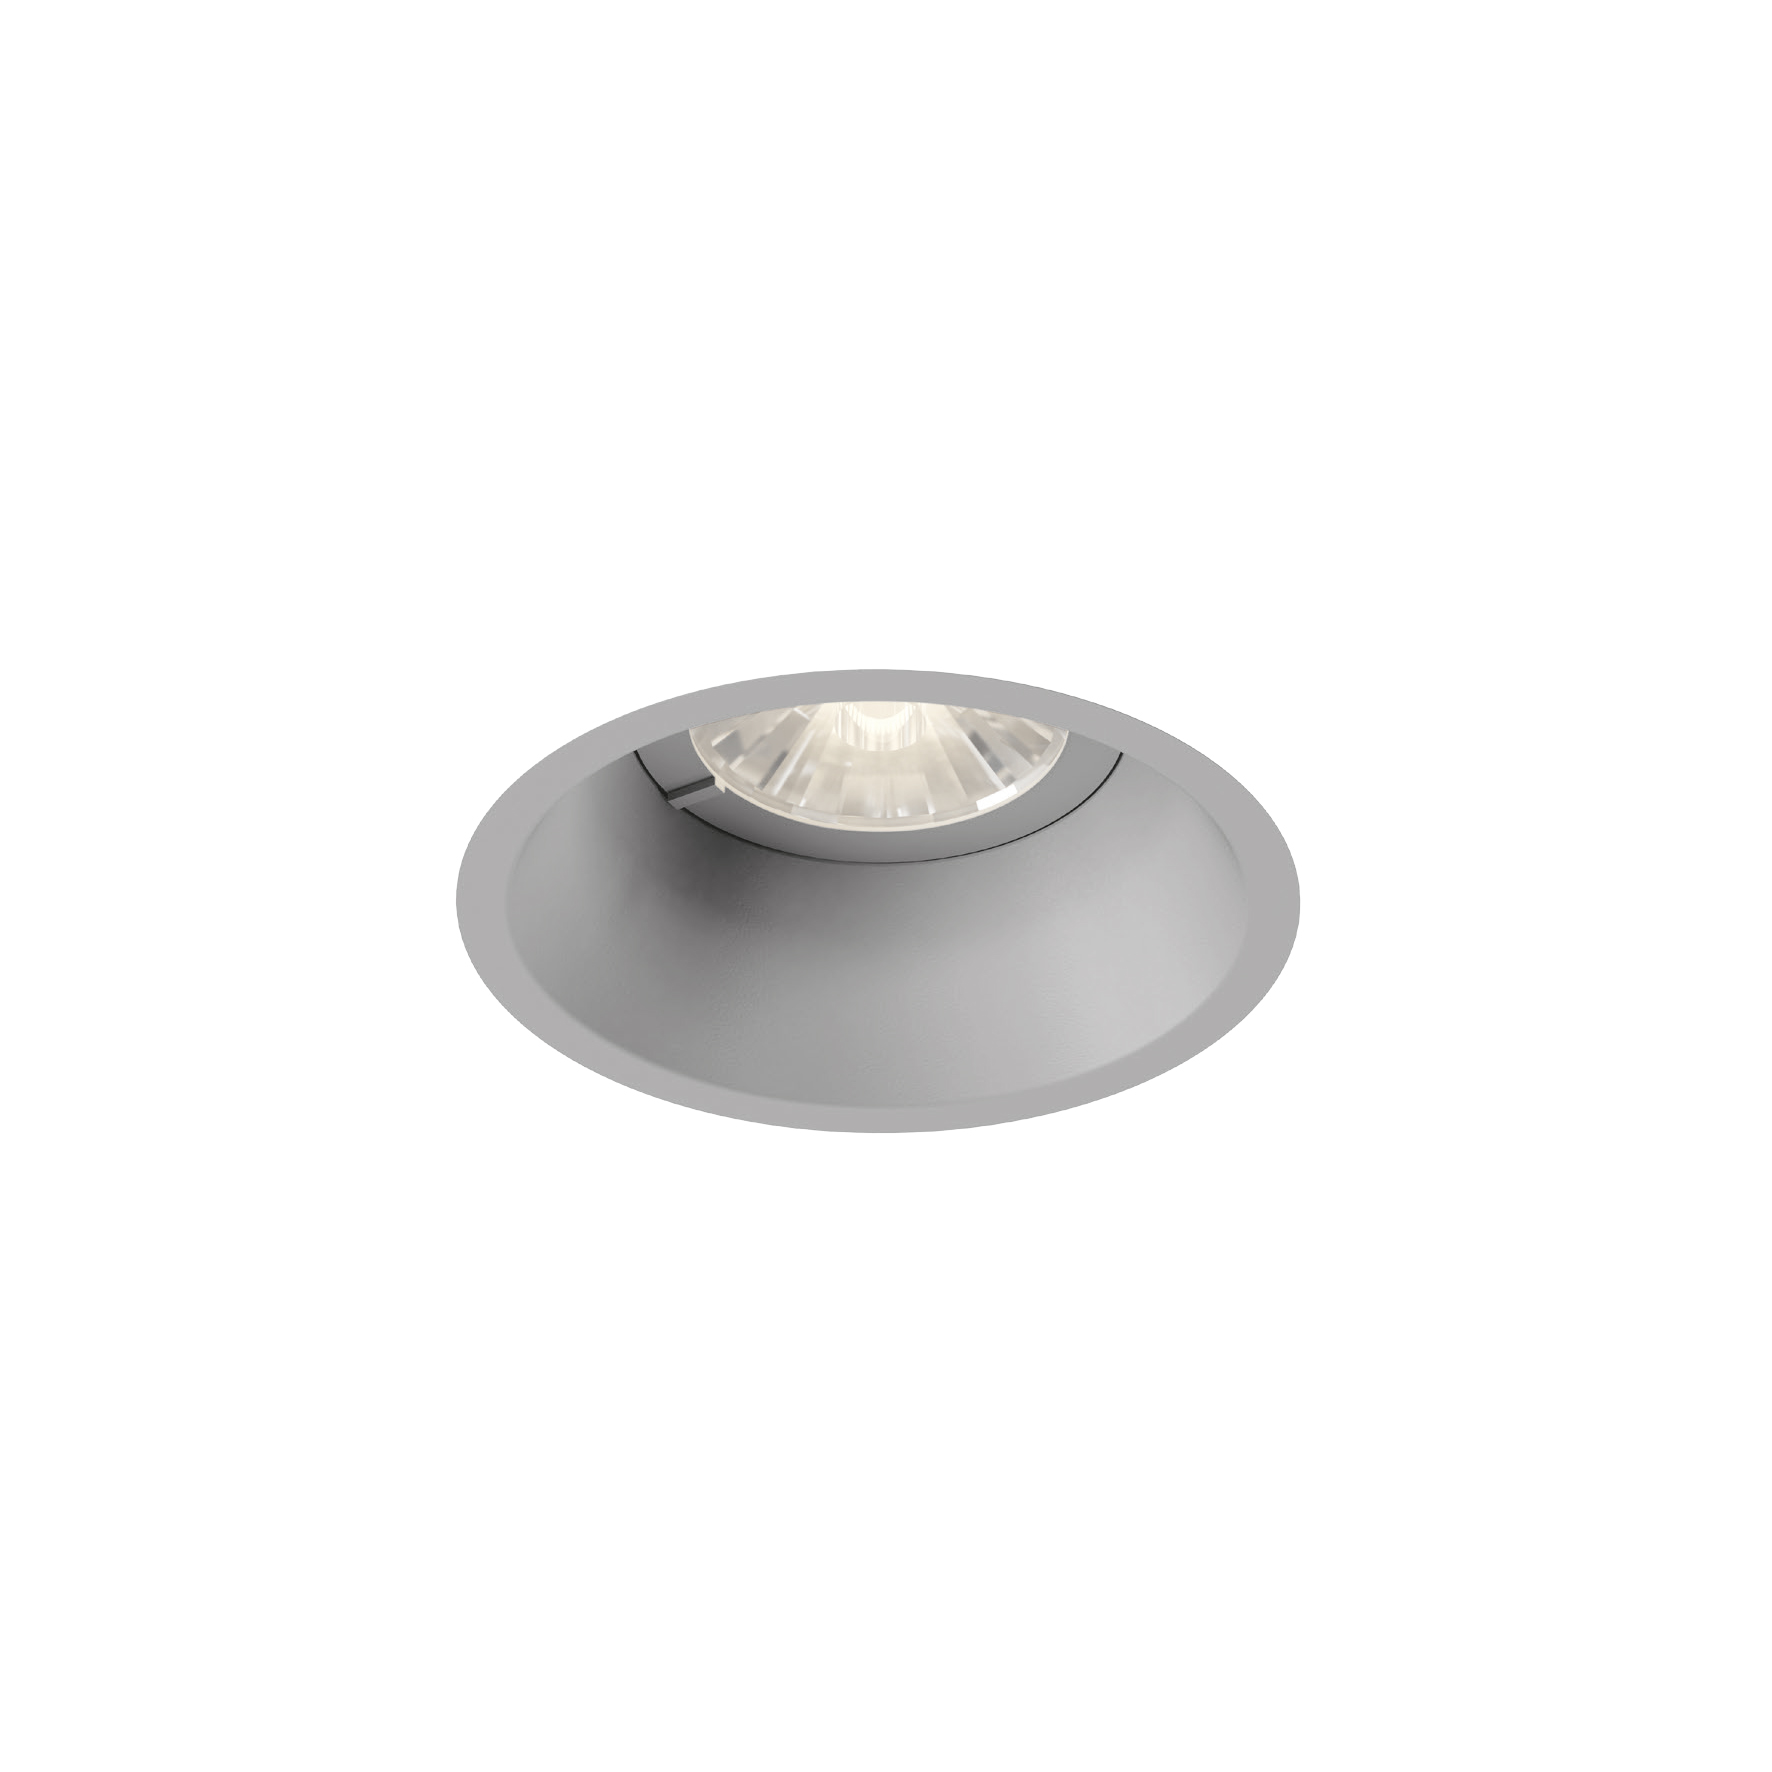 636009996643295621DEEP-1.0-LED-silver-grey.jpg